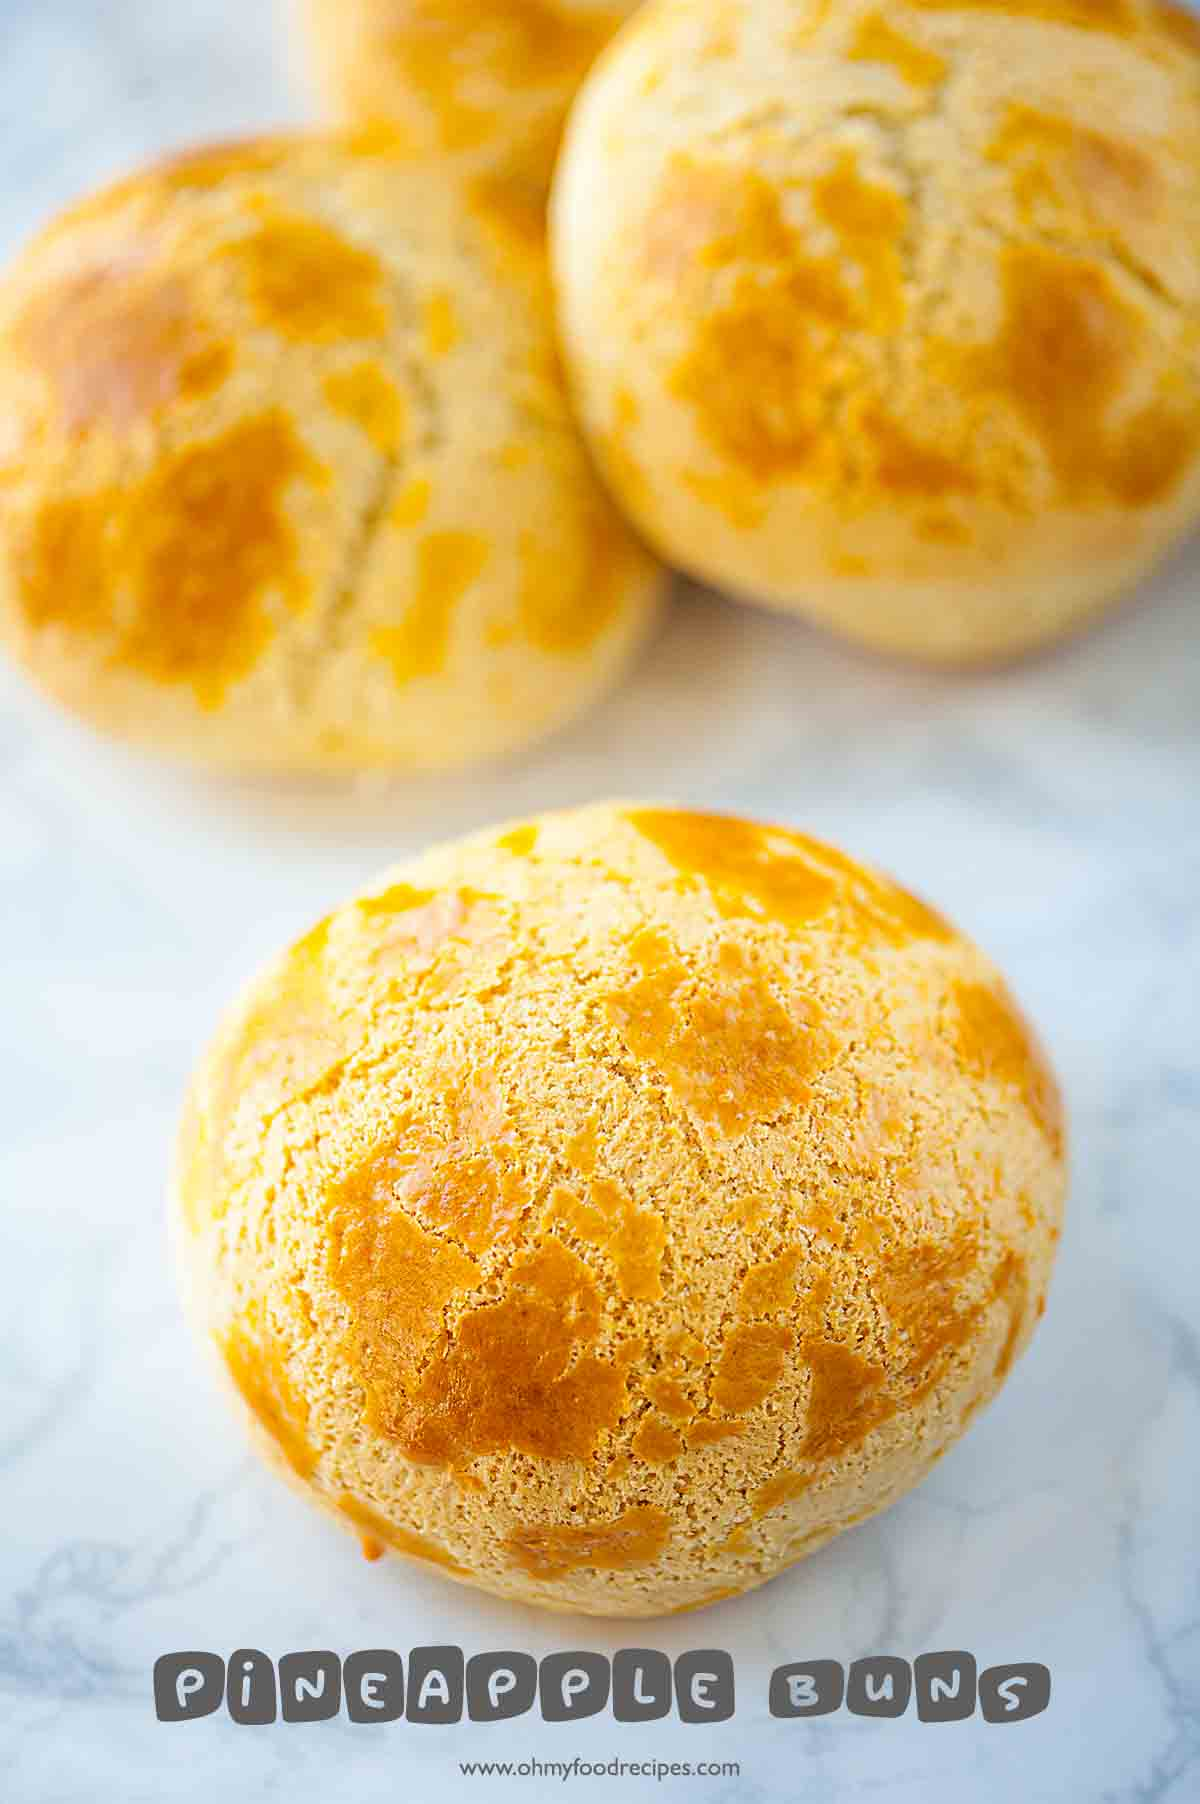 Chinese pineapple buns or bo lo bao close up front